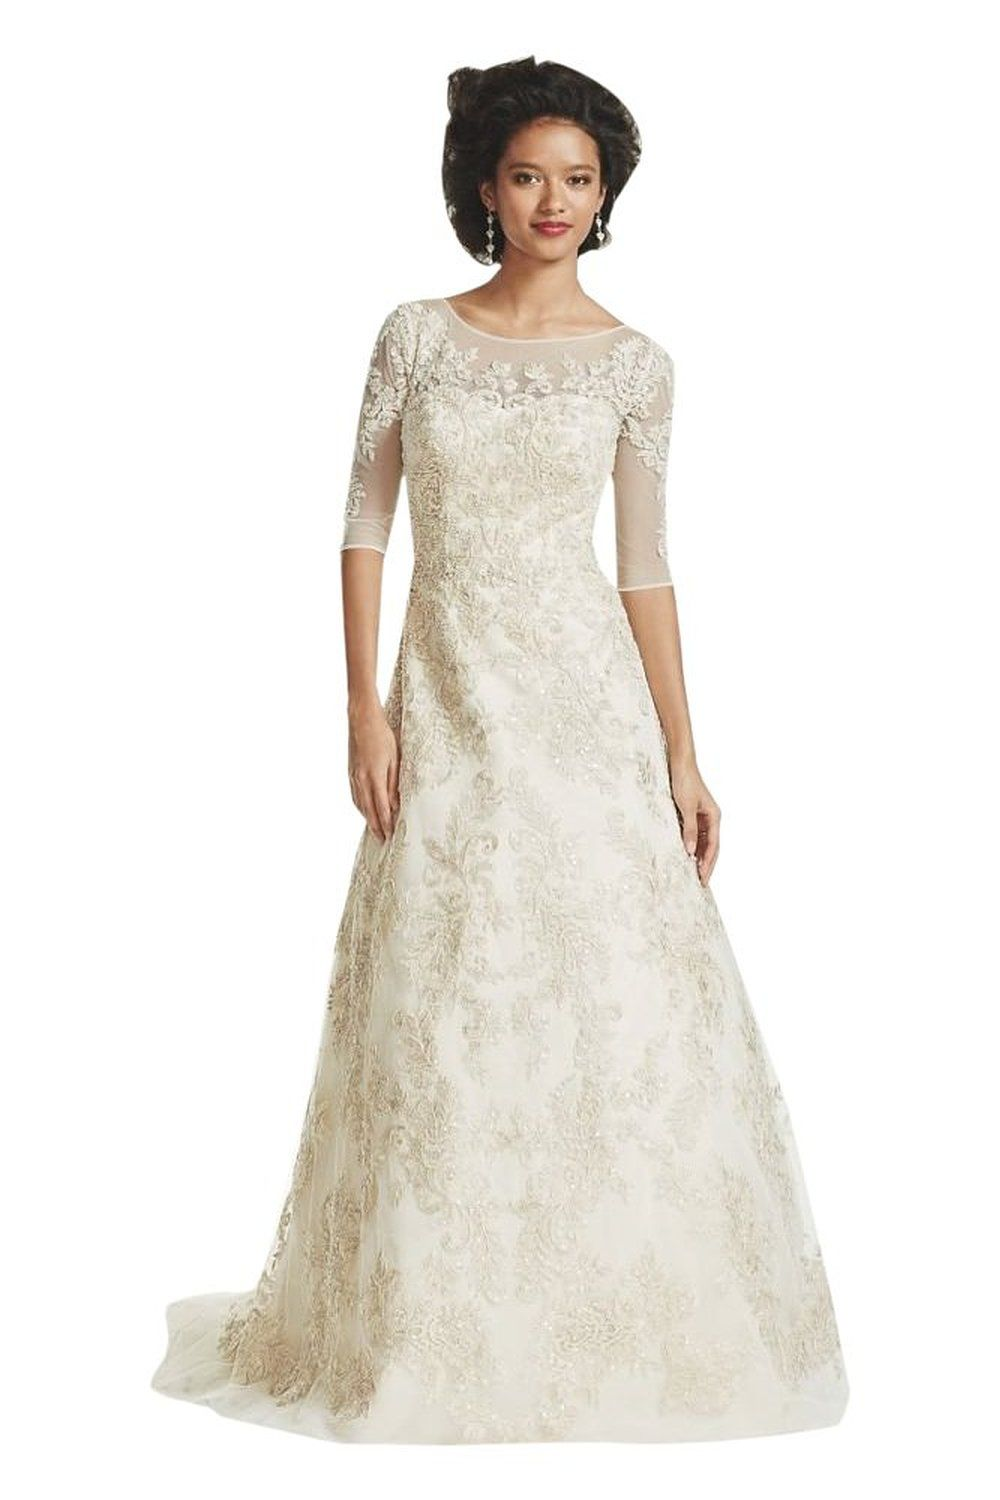 Tulle Oleg Cassini 3/4 Sleeve Lace Wedding Dress Style CWG630 at ...